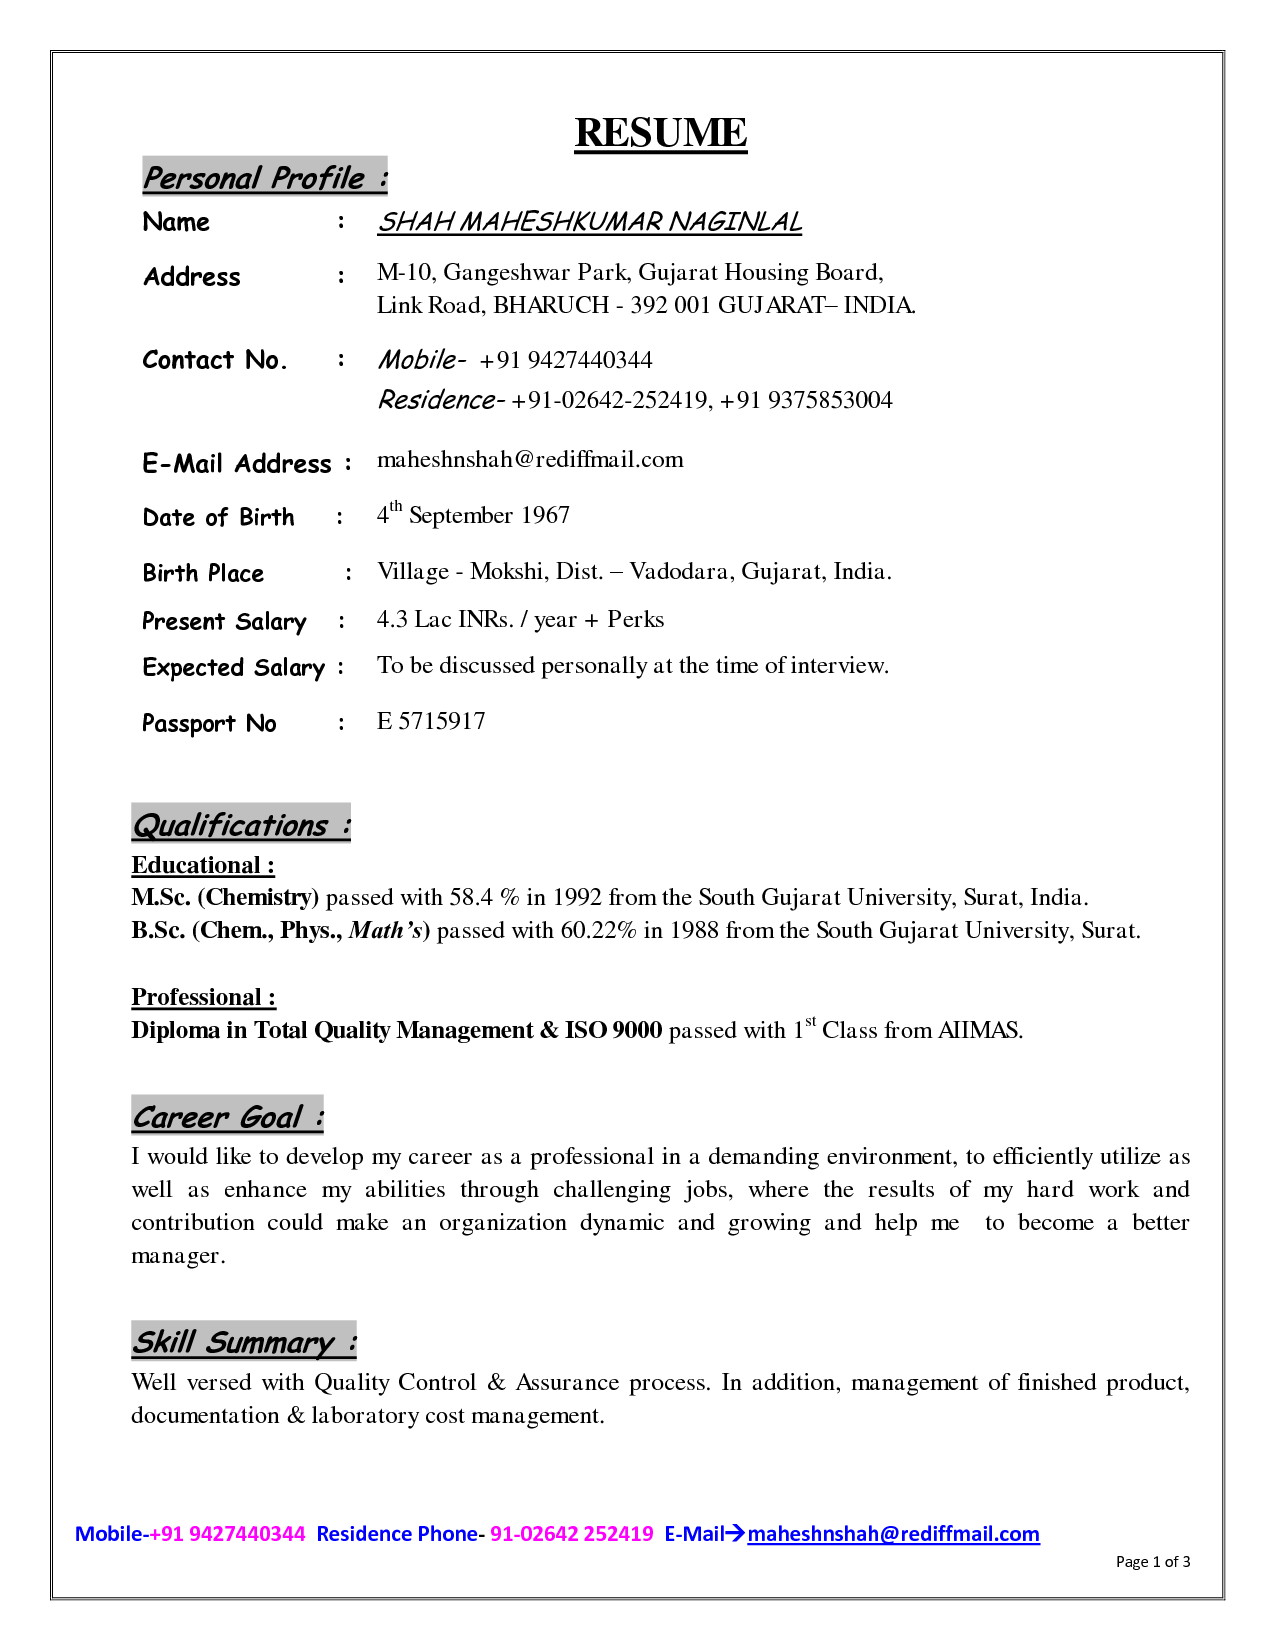 resume profile example free download resume profile